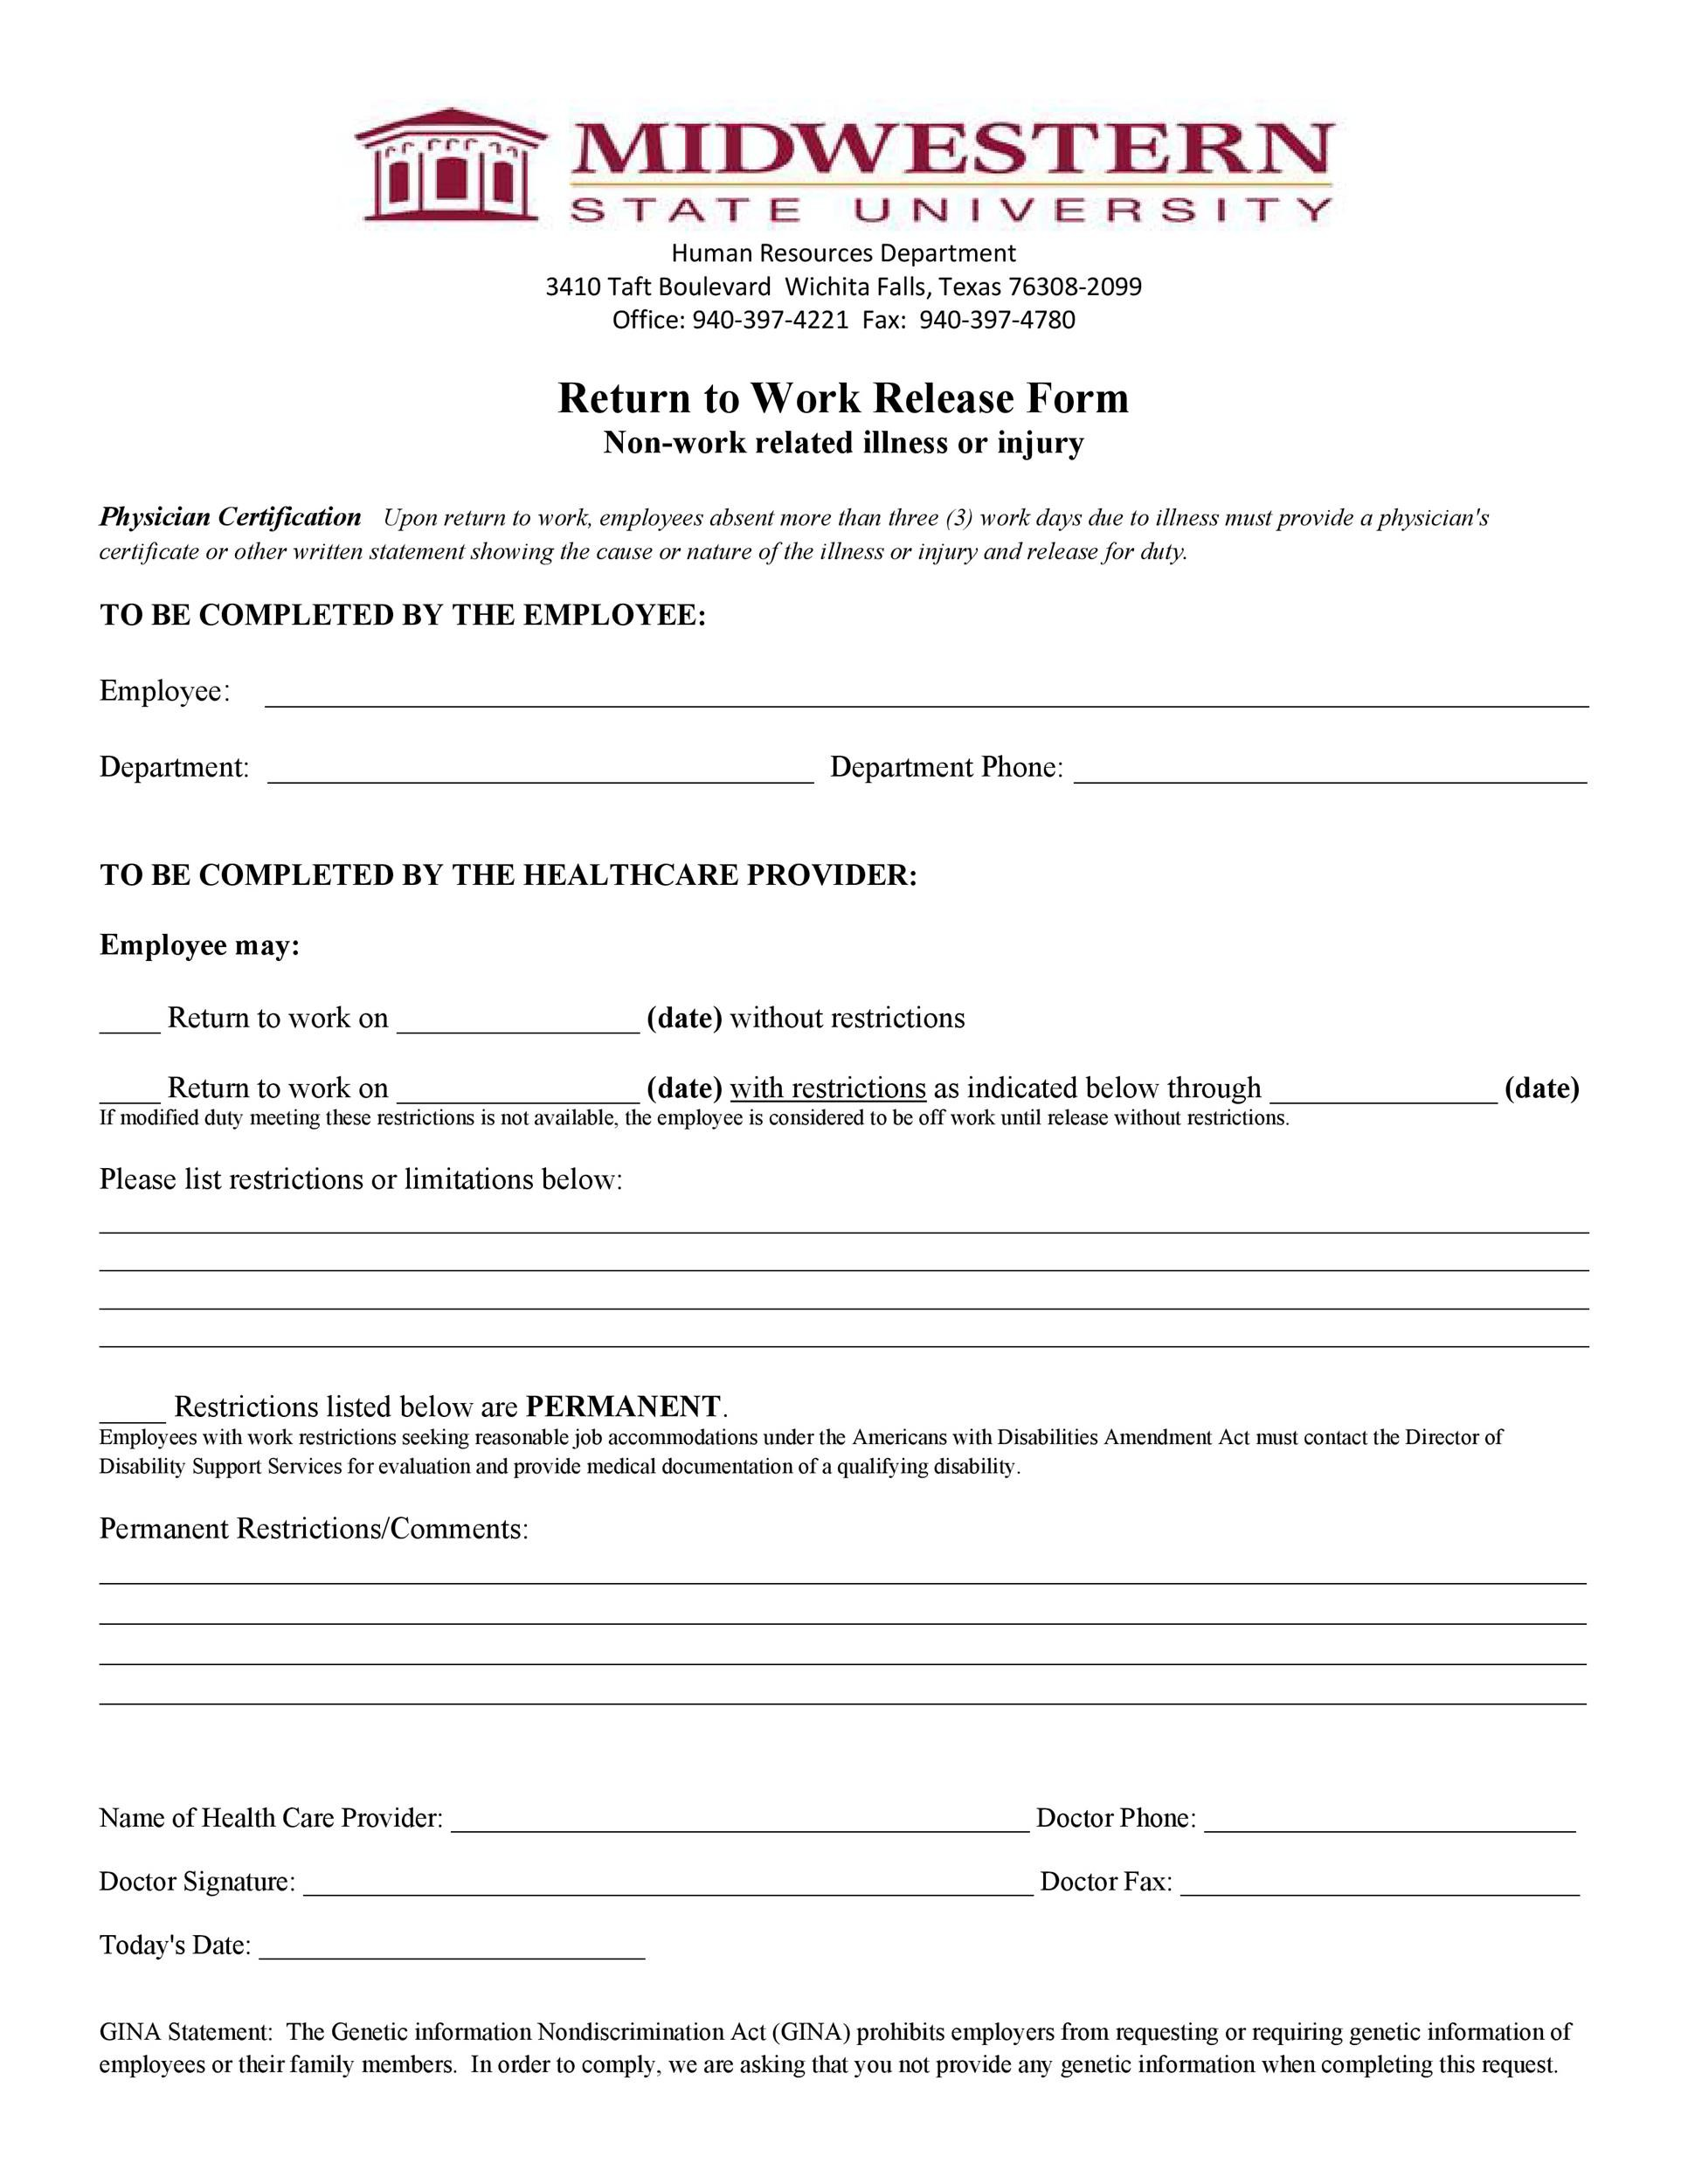 Free return to work form 20